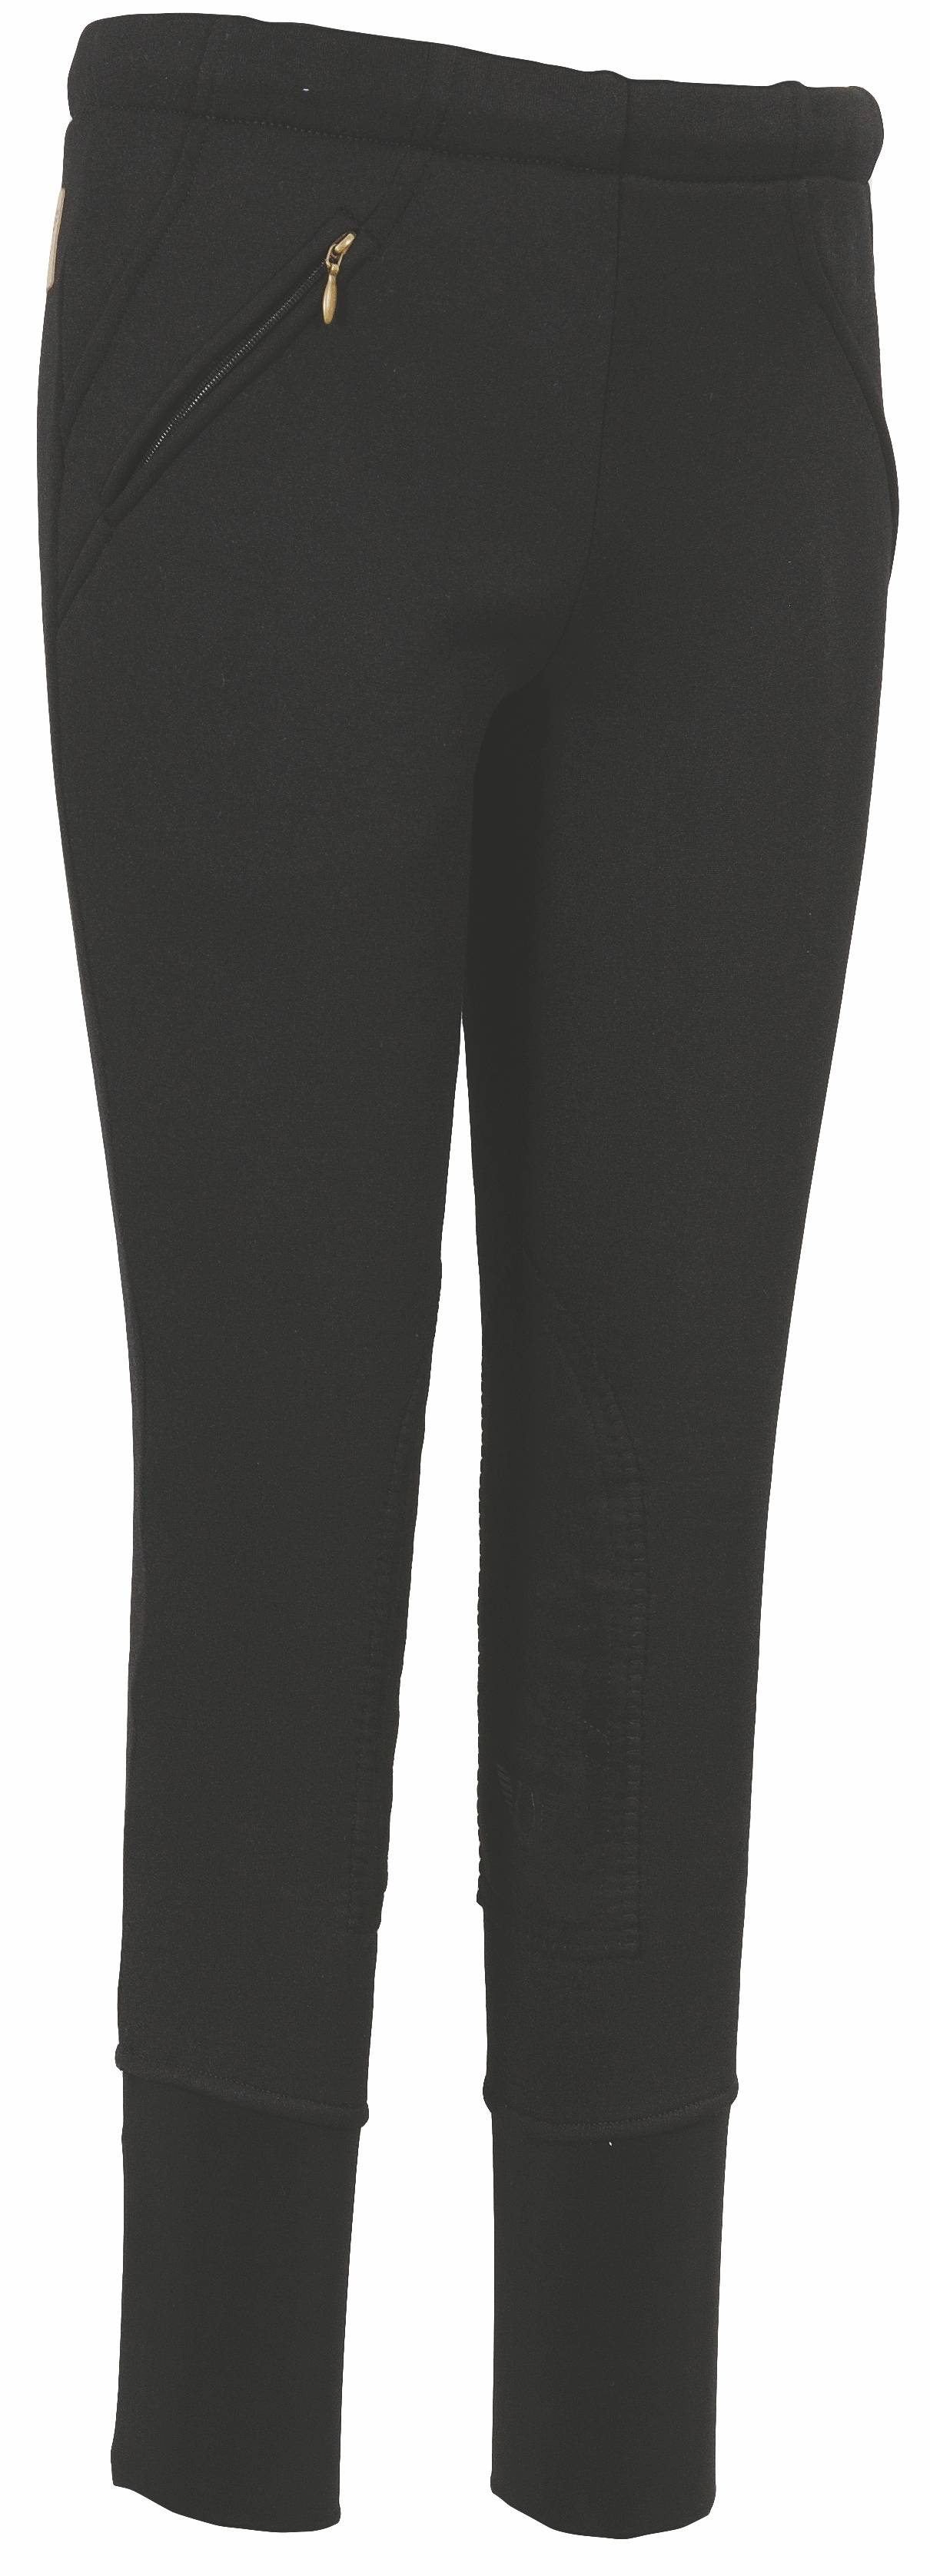 TuffRider Childs Unifleece Rding Breeches